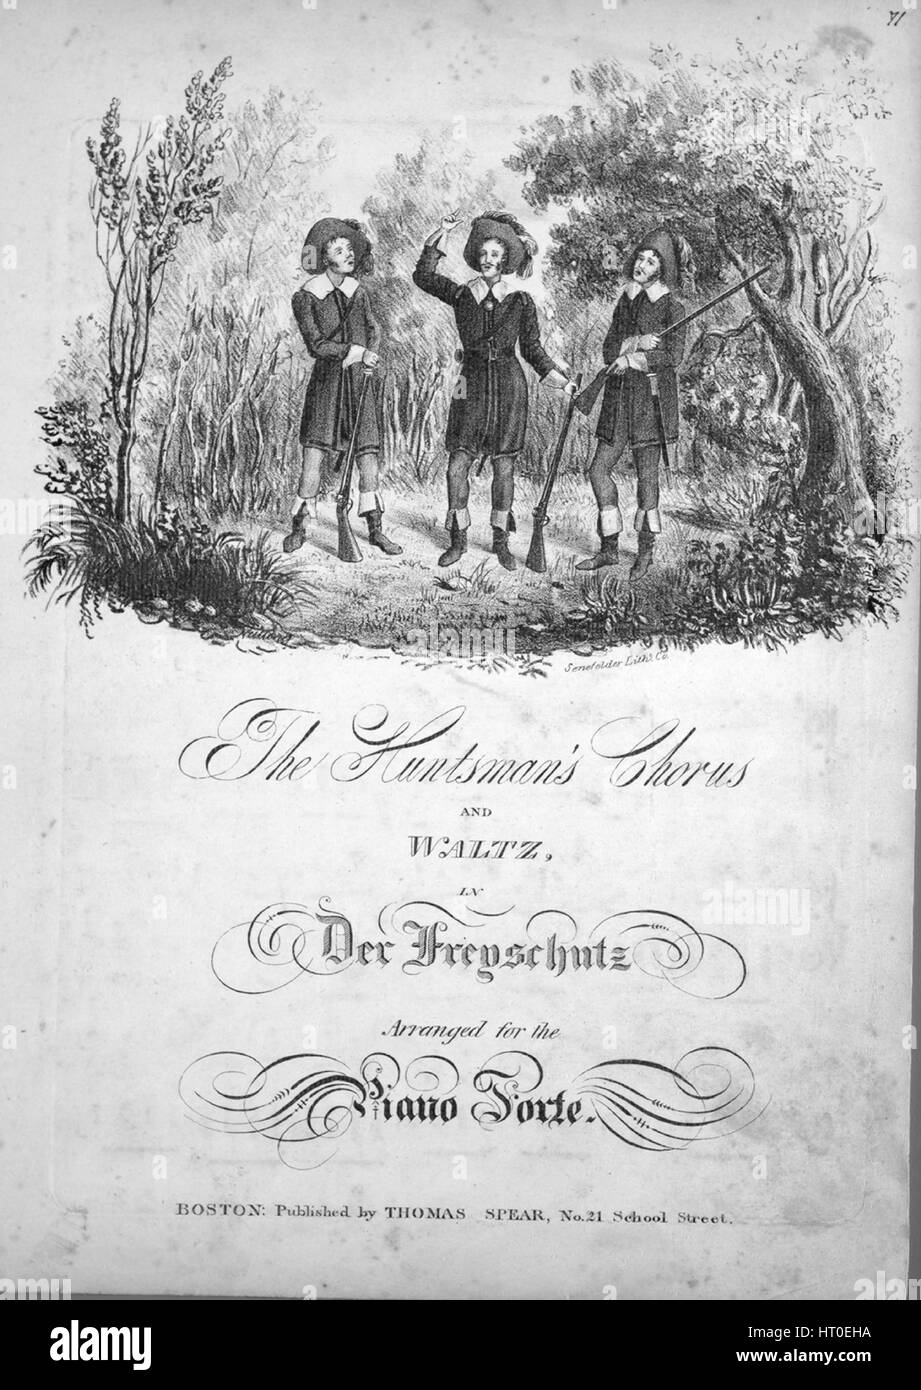 Sheet music cover image of the song 'The Huntsman's Chorus and Waltz in Der Freyschutz', with original - Stock Image